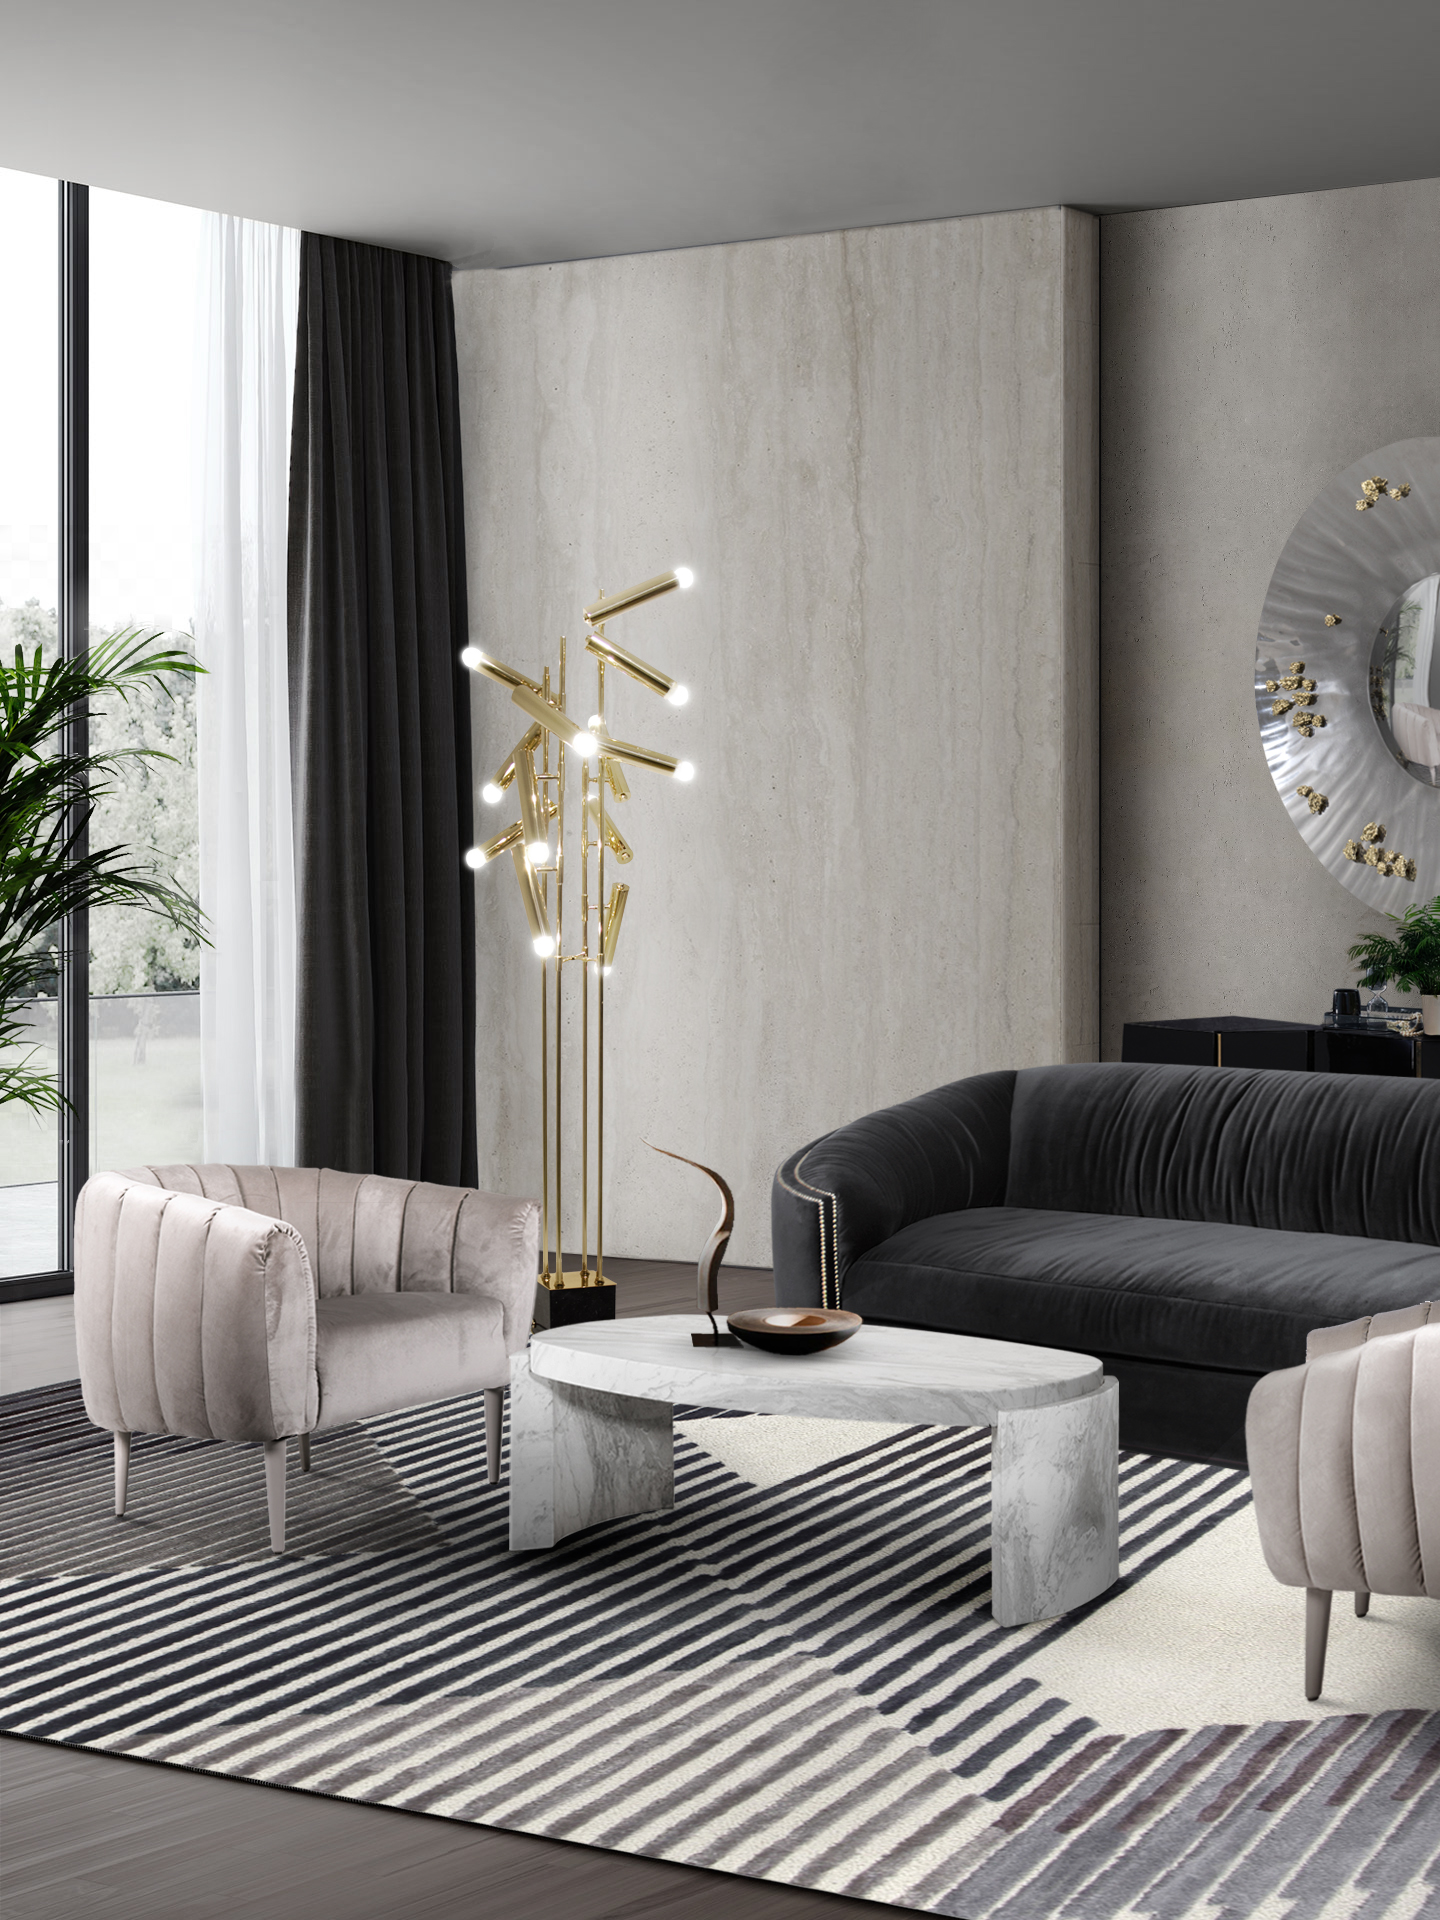 20 Modern Armchairs For A Bold And Timeless Design modern armchairs 20 Modern Armchairs For A Bold And Timeless Design 20 Modern Armchairs For A Bold And Timeless Design10